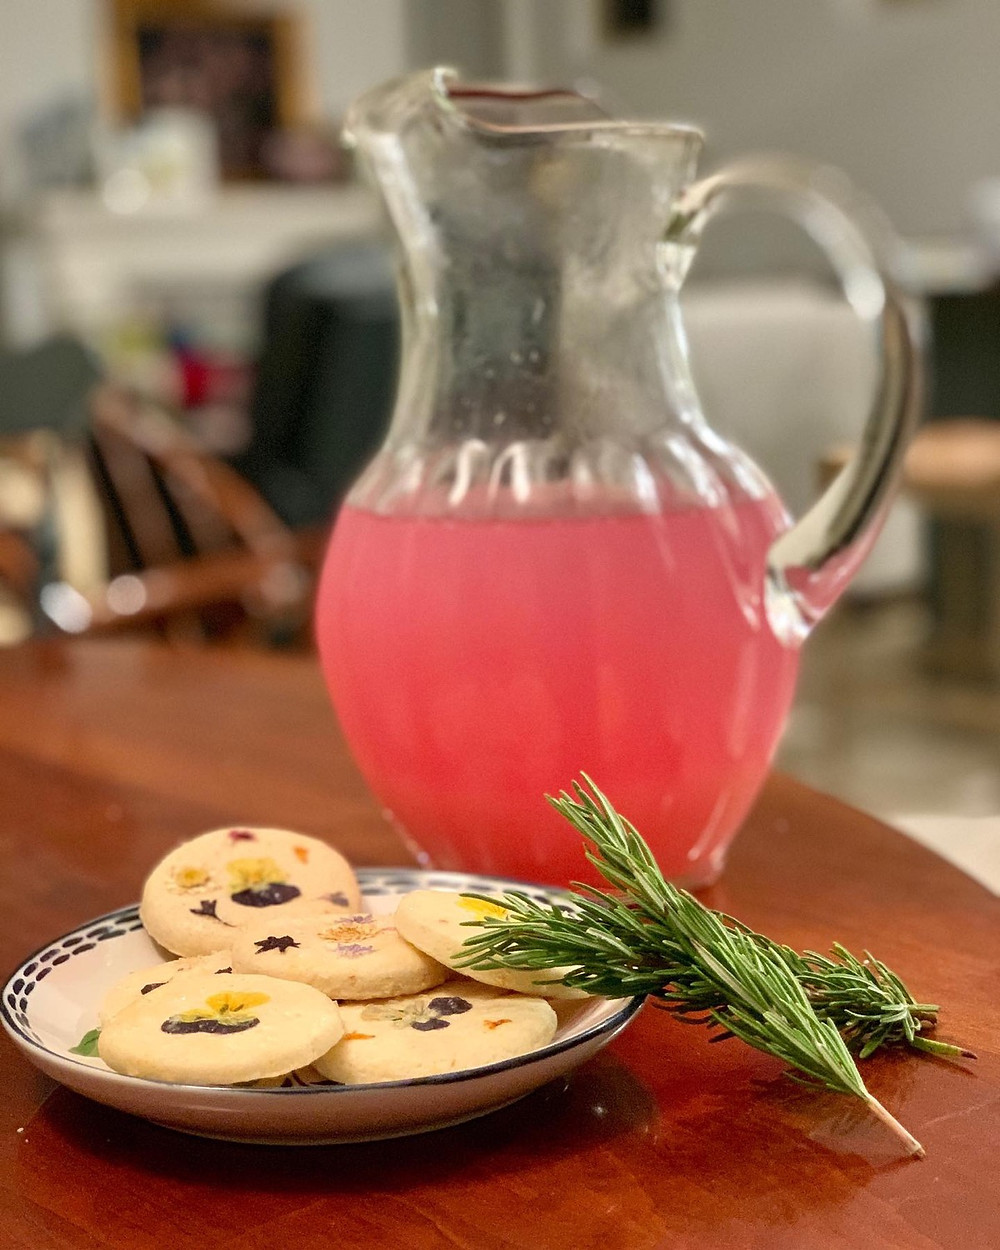 Bright pink liquid in a clear glass pitcher. In front of the pitcher, there is a small plate of sugar cookies with dried flowers baked into the tops. There are two sprigs of rosemary propped against the plate at a diagonal. The background is blurred.